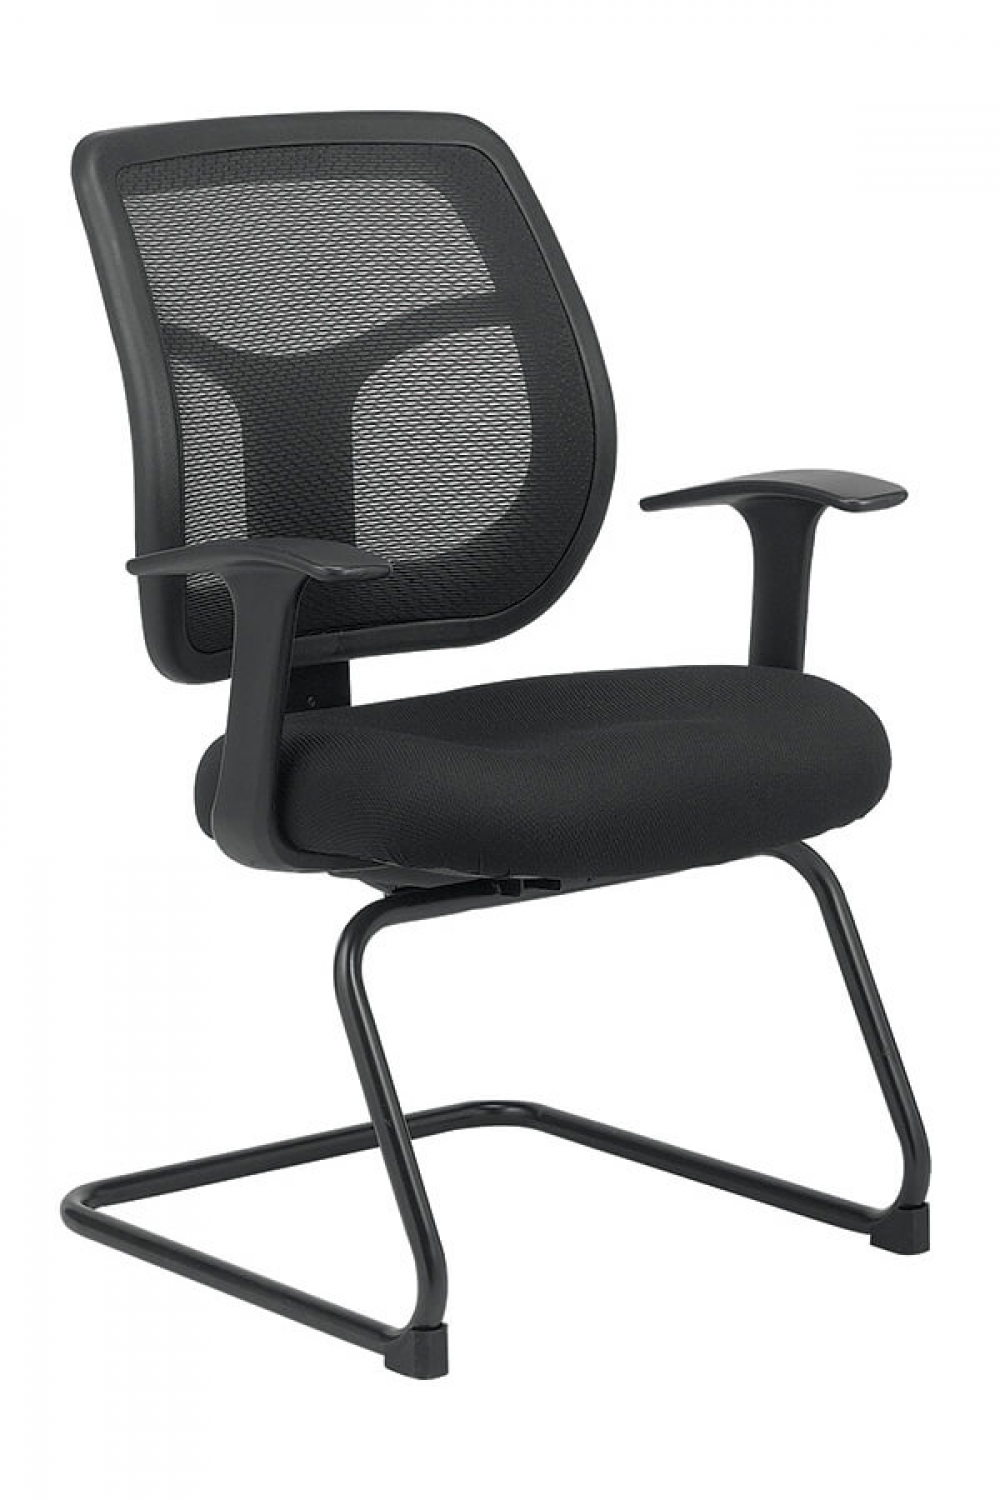 office-furniture-chairs-guest-office-chairs.jpg